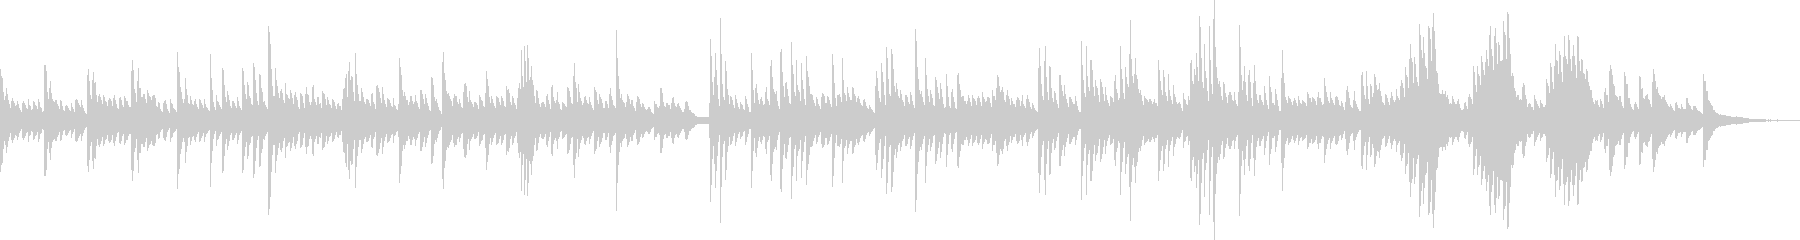 Moist and fantastic piano piece's unreproduced waveform